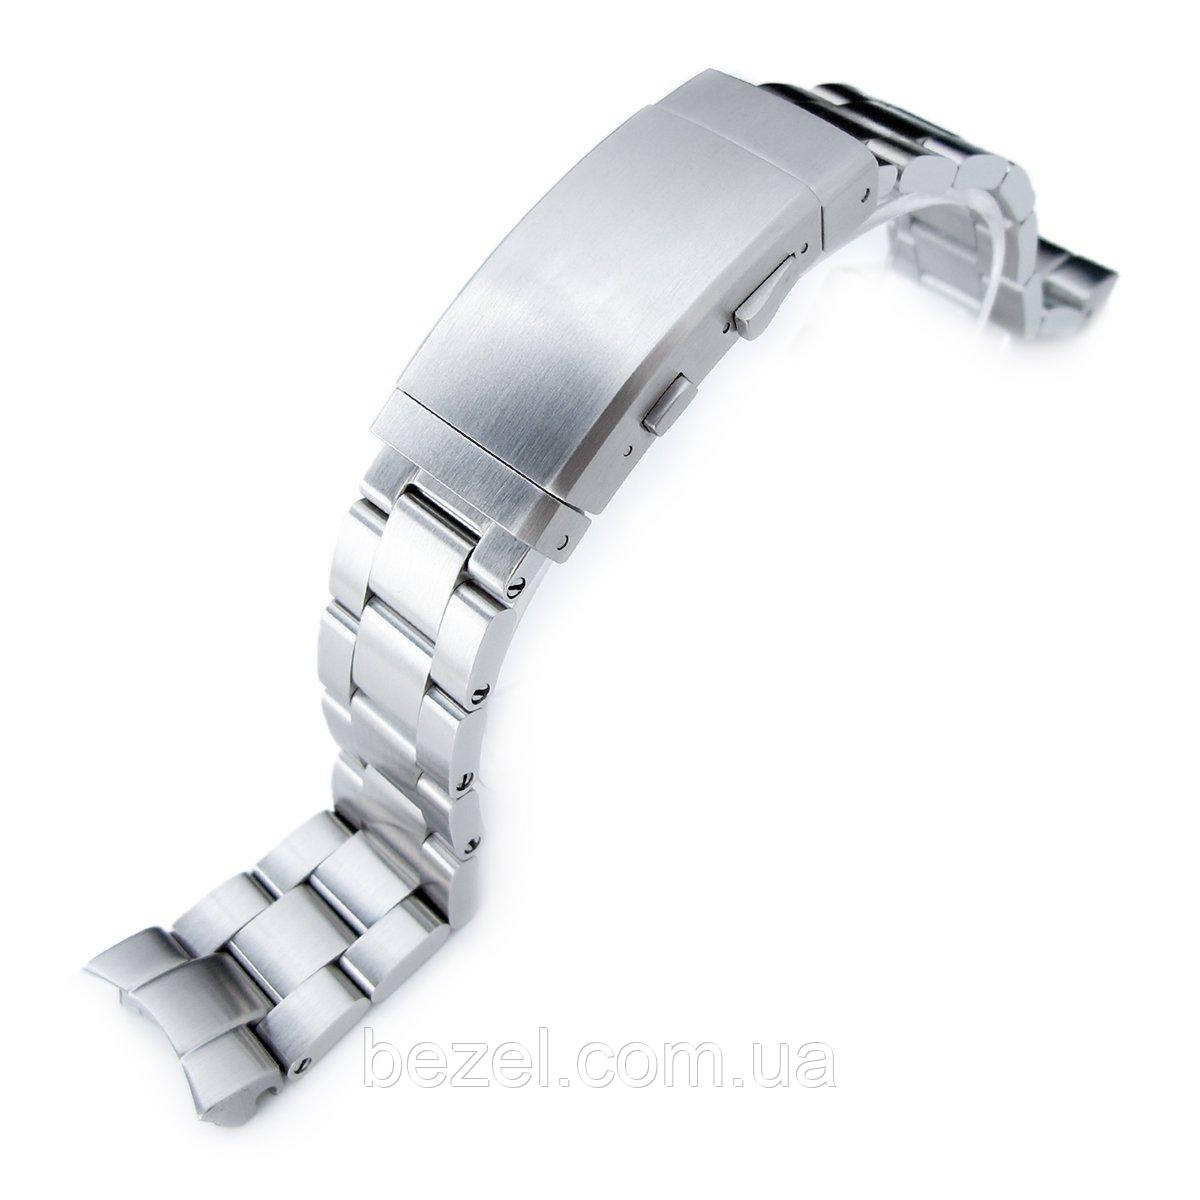 20mm Super Oyster 316L Stainless Steel Watch Band for Seiko SKX013, Wetsuit Ratchet Buckle